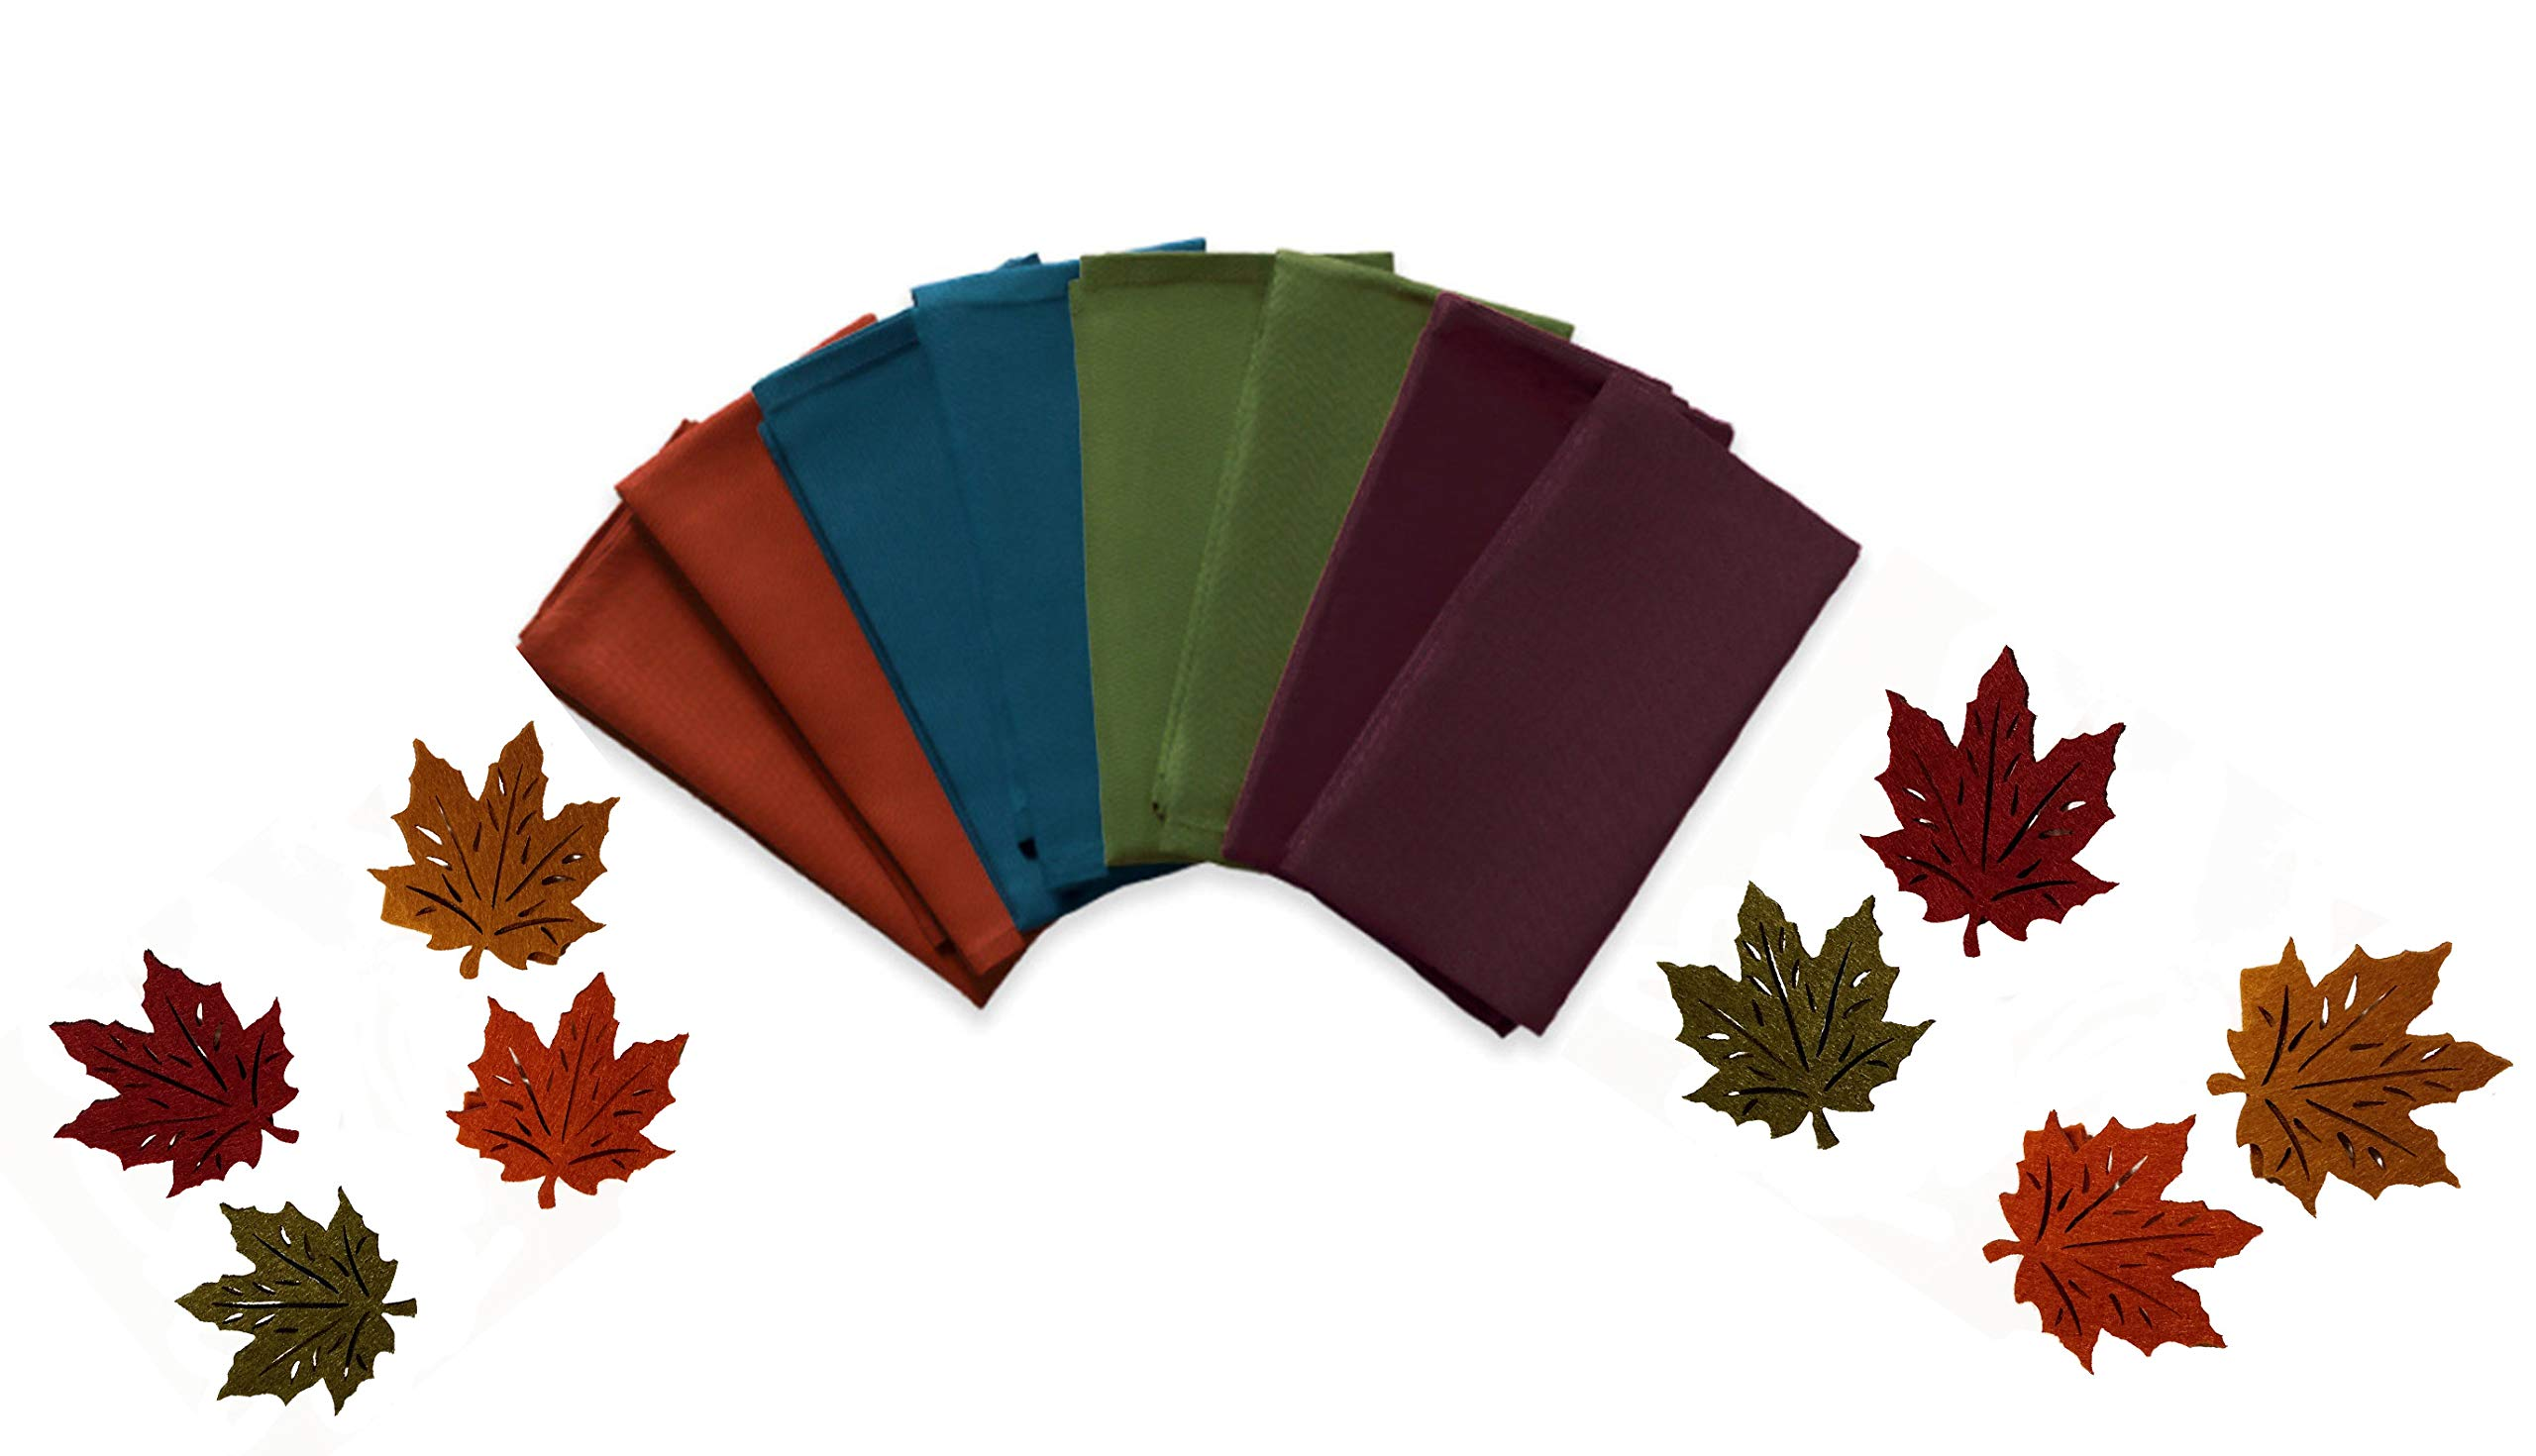 Sister Shoppe Dinner Napkins and Leaf-Shaped Napkin Rings Set of 8 of Each in Fall Harvest Solid Colors